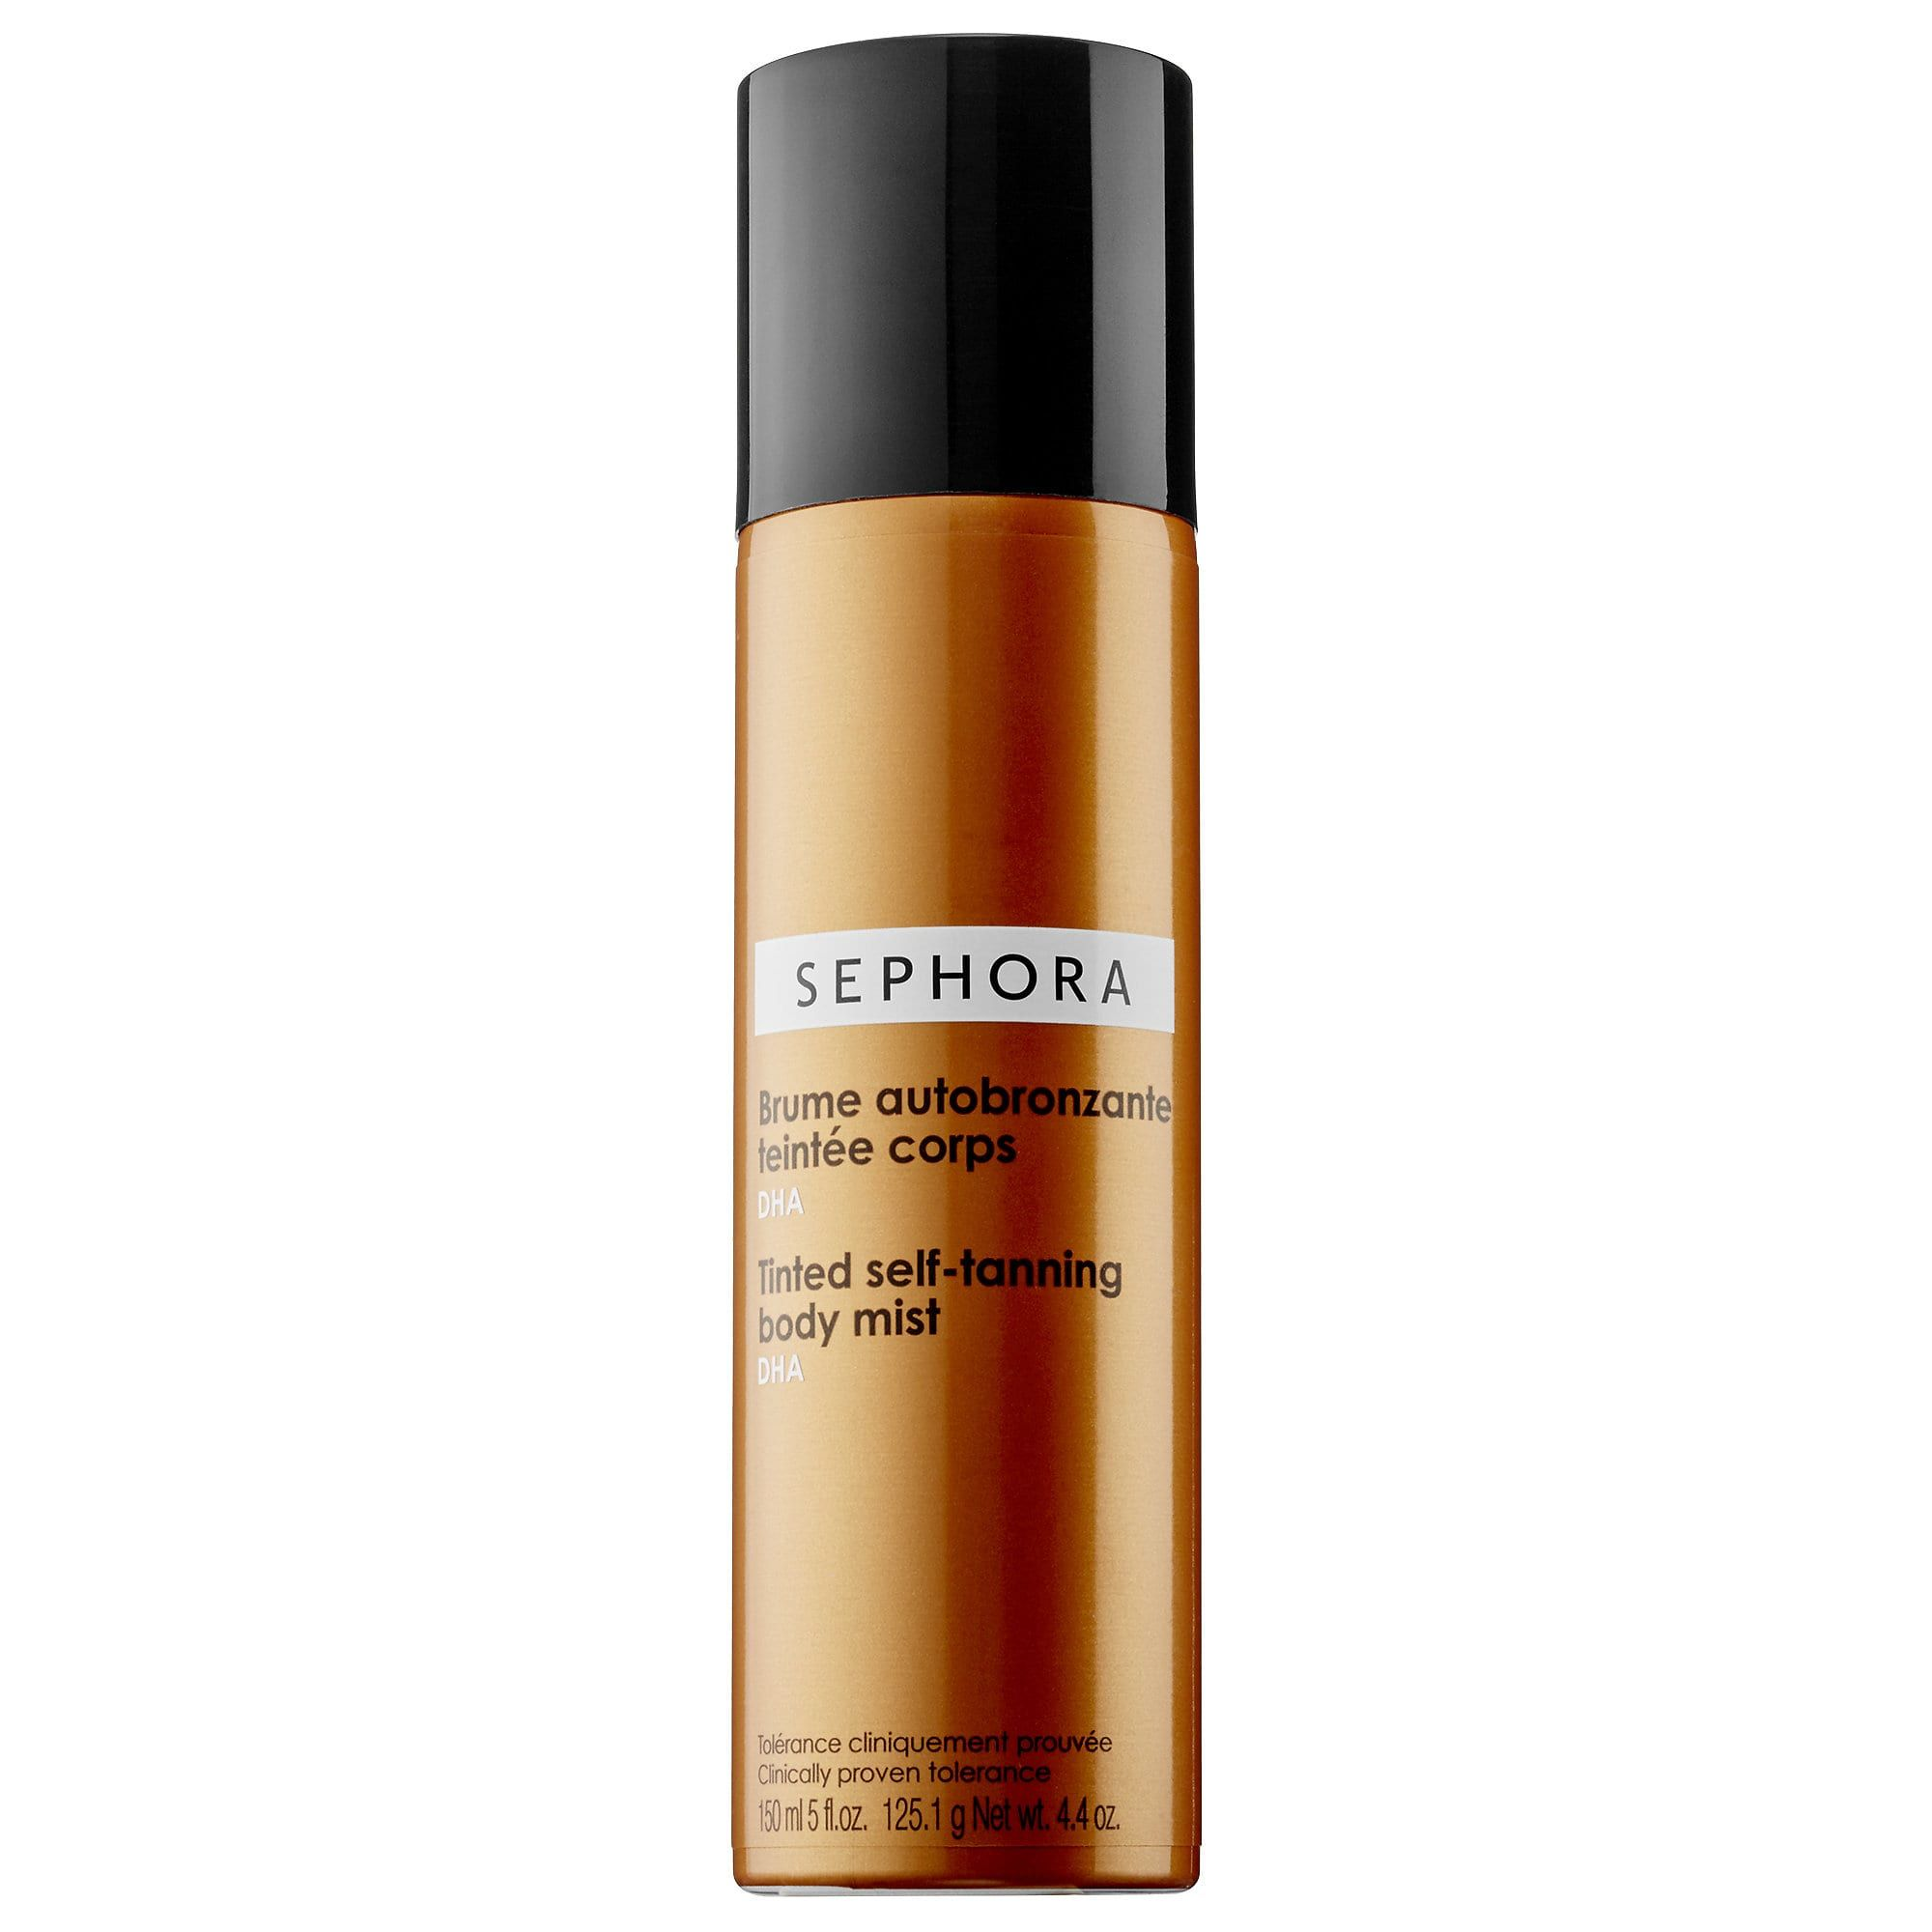 The Instant Tan Tinted Self-Tanning Body Mist Sephora Collection sephora.com $18.00 SHOP NOW If you've got a special occasion and need a color boost quick, this bronzing mist will immediately add warmth to your skin.